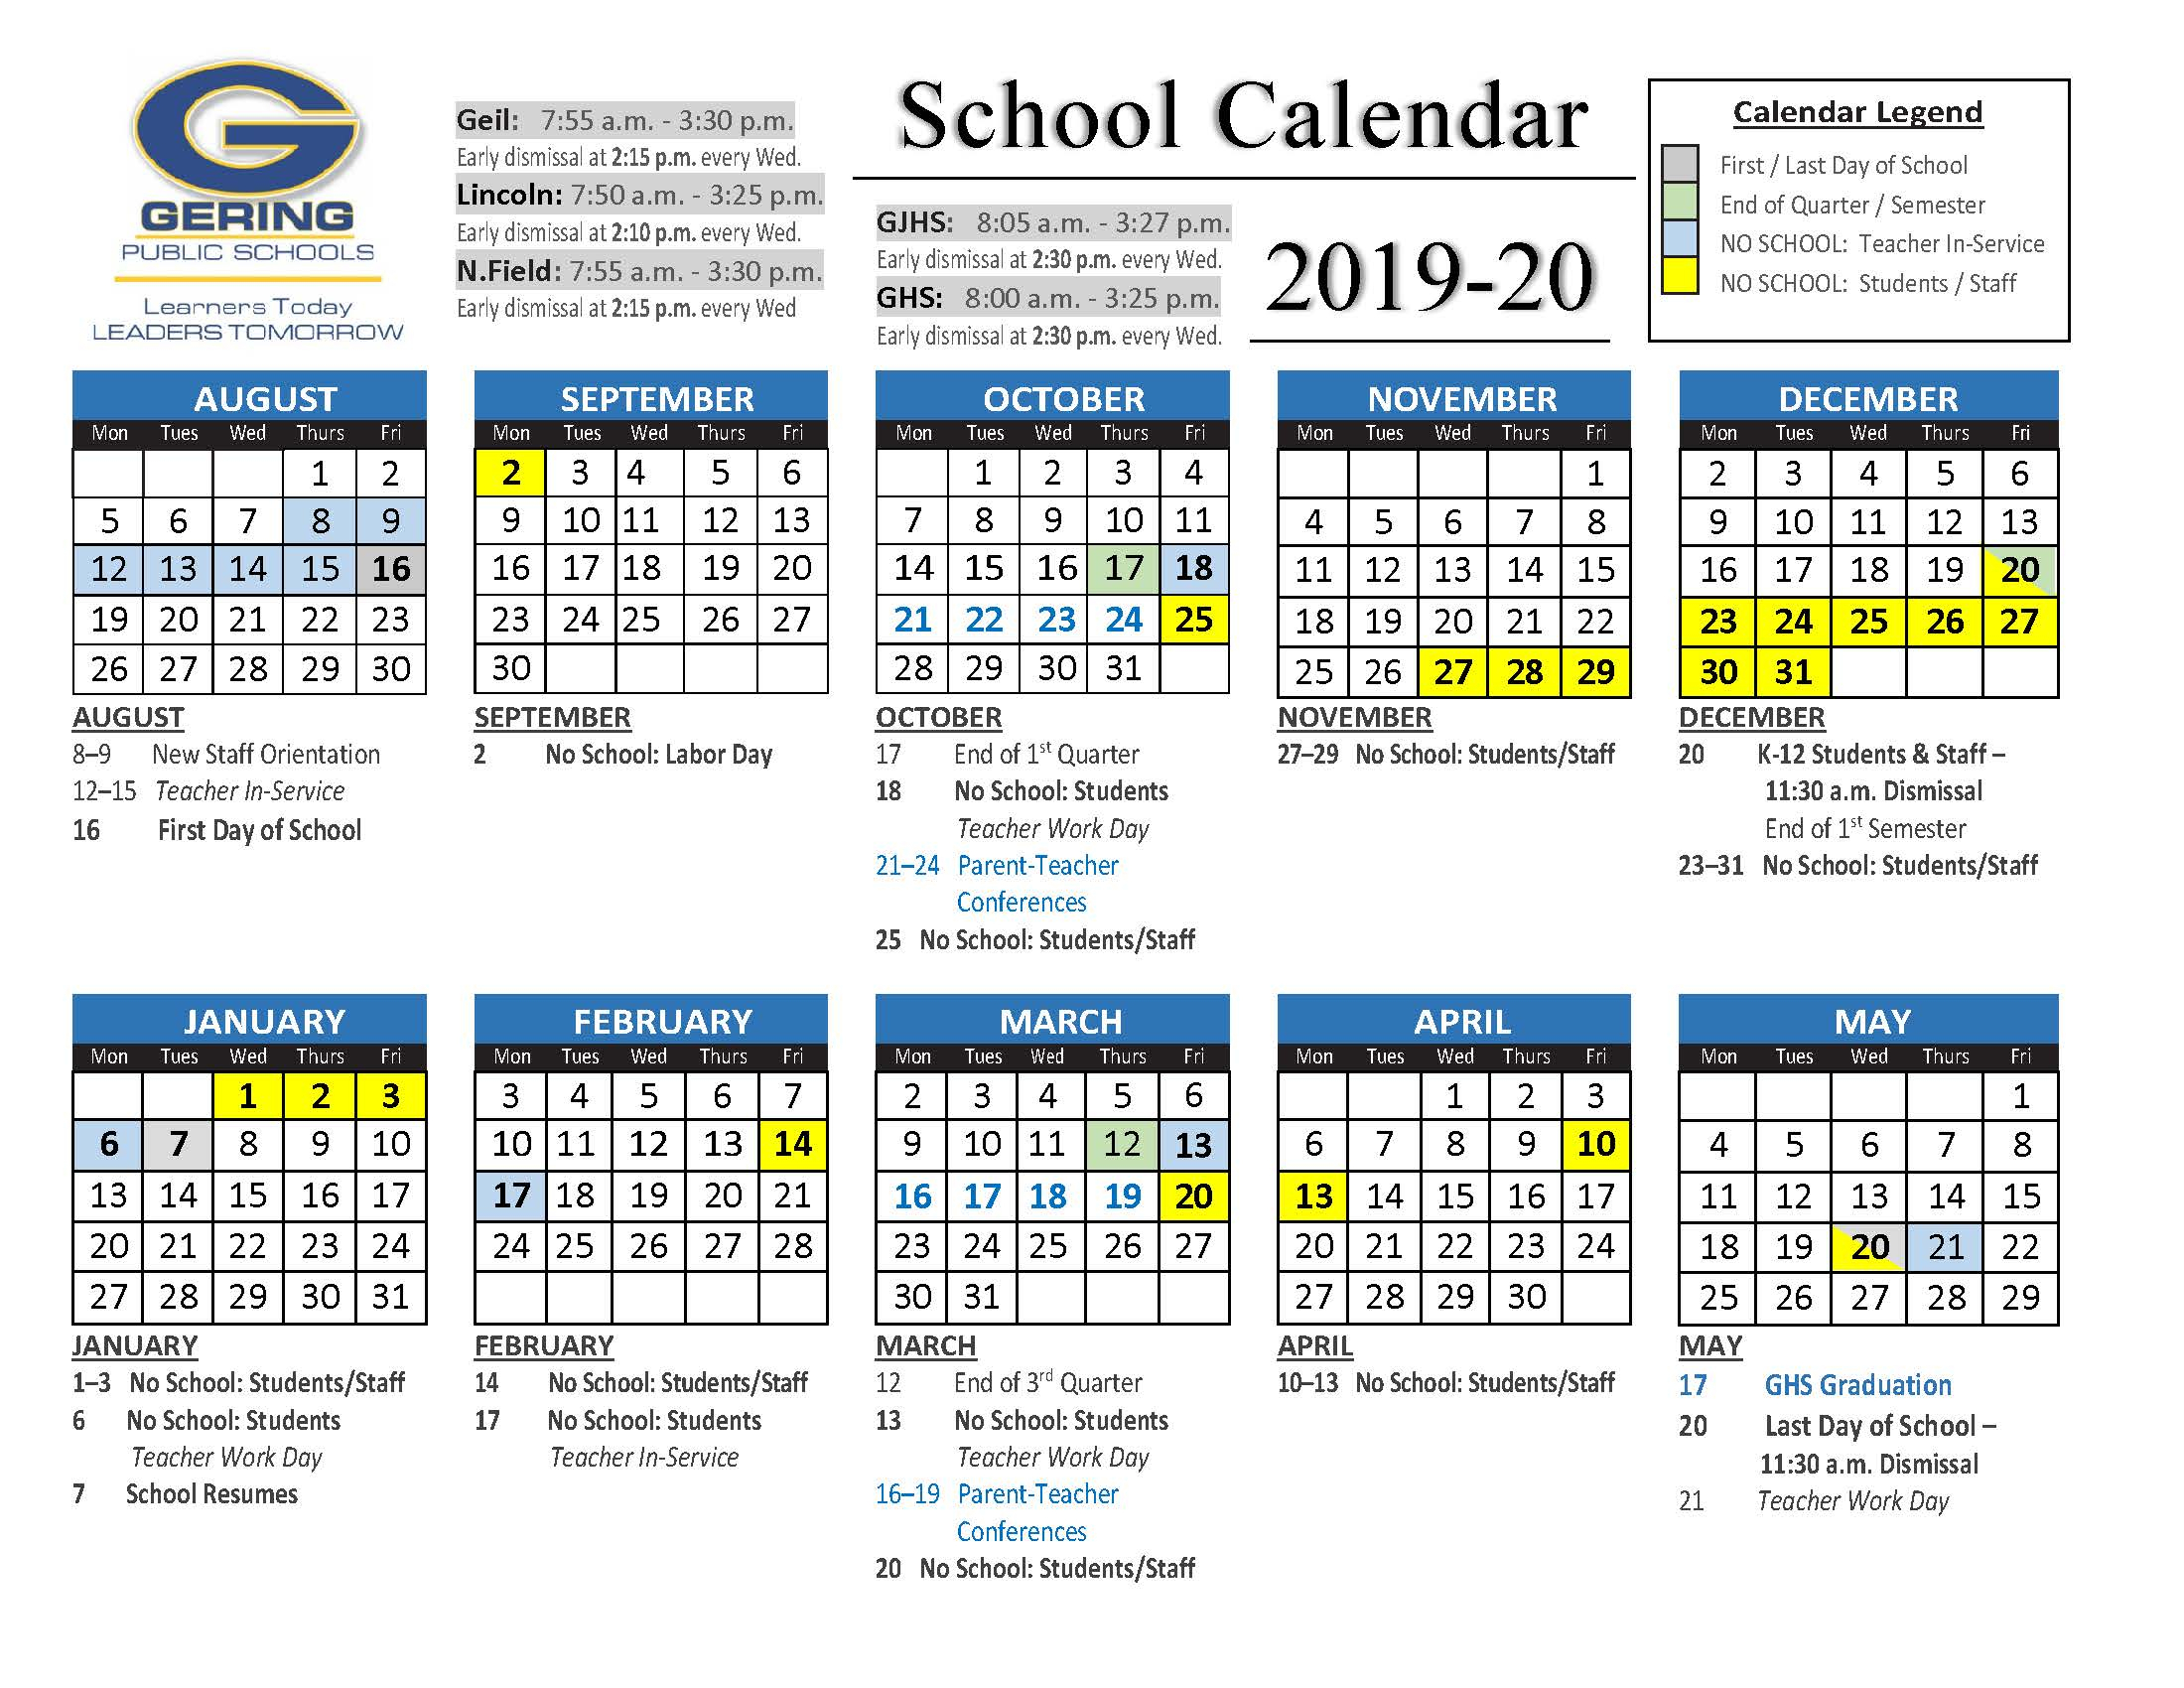 Printable School Calendar  Topa.mastersathletics.co throughout Monarch Christian School Calendar